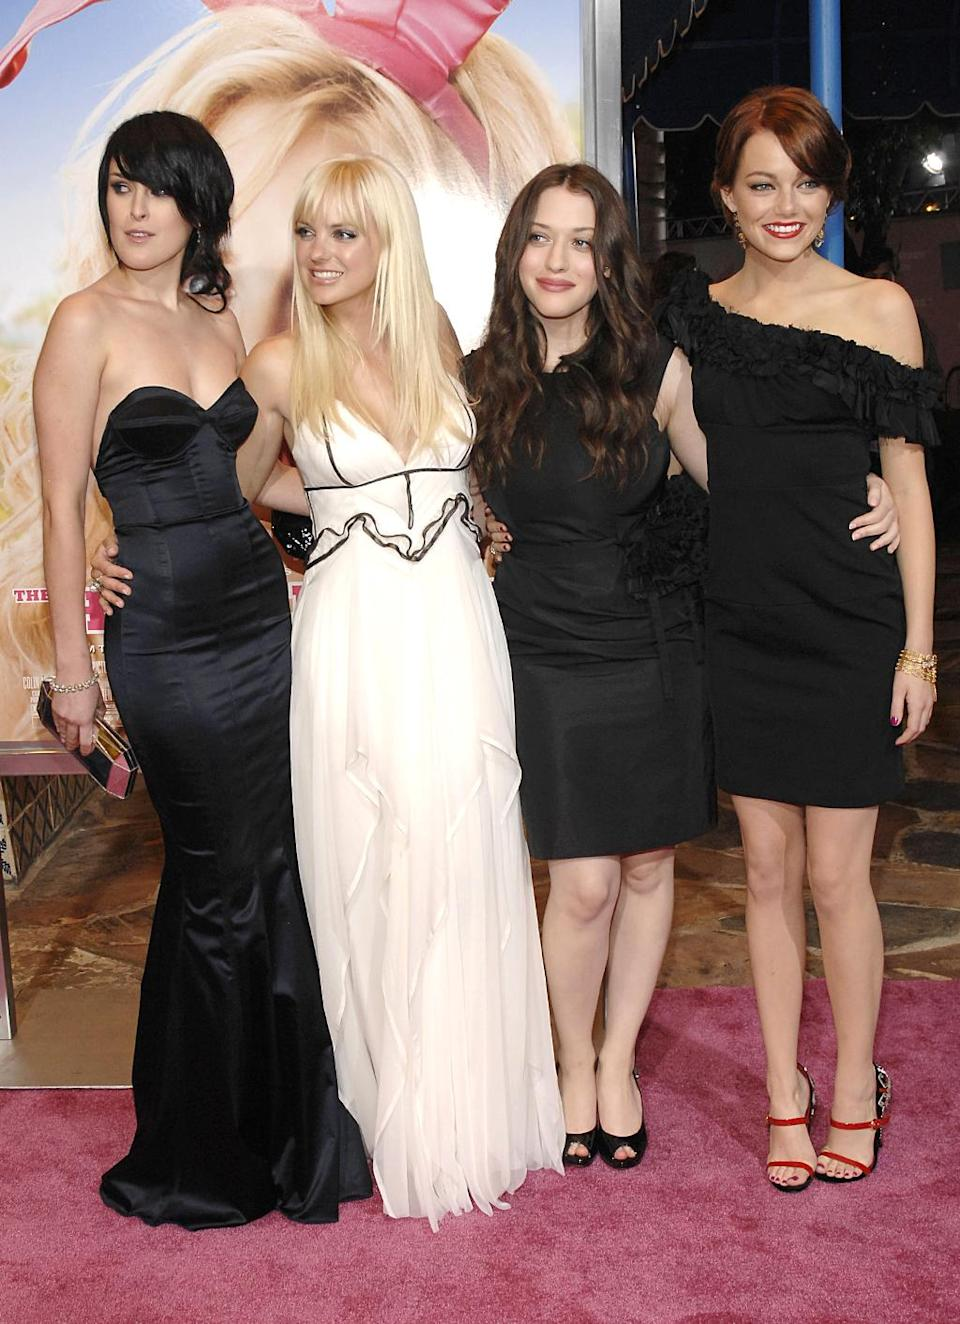 <p>In 2008, Stone stars as a sorority girl alongside Rumer Willis, Anna Faris, and Kat Dennings in the comedy <em>House Bunny.</em> (Photo: Patrick McMullan/Getty Images) </p>